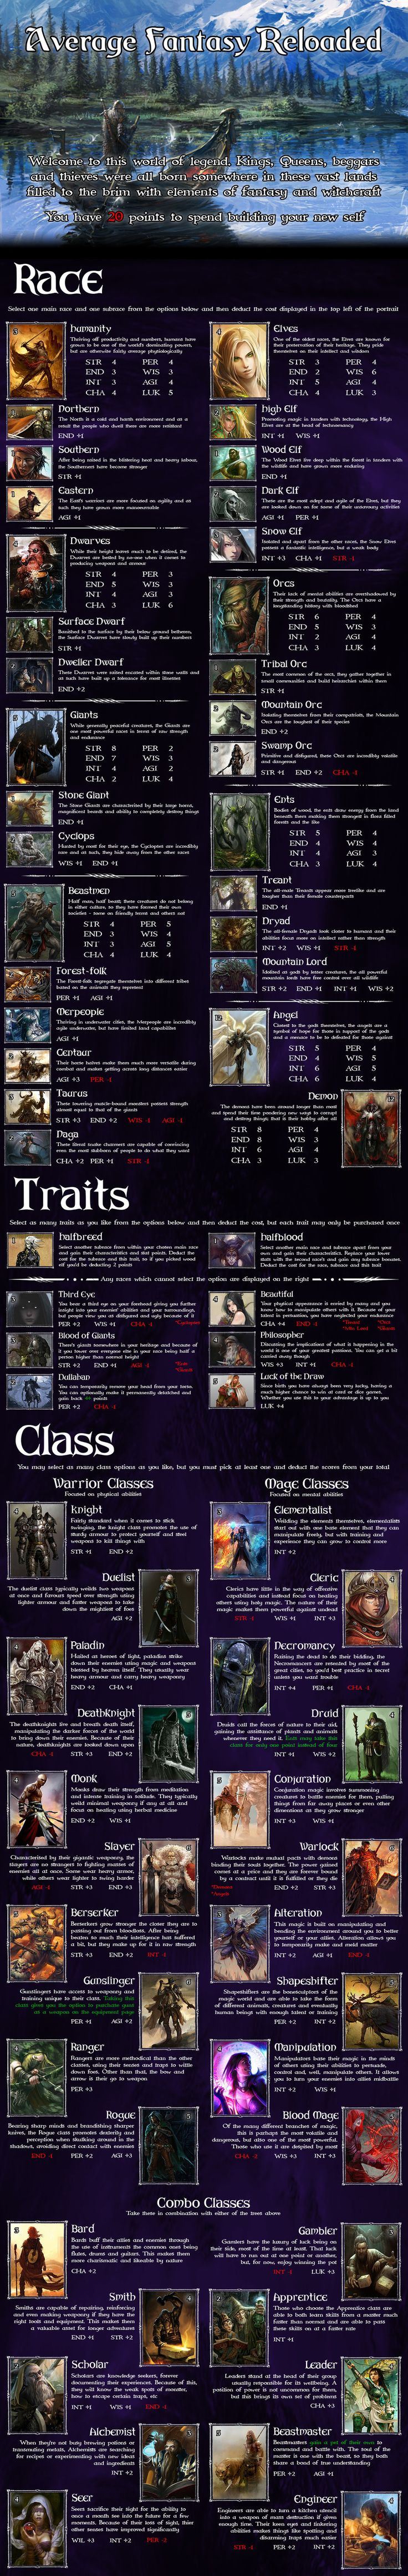 Average Fantasy Reloaded CYOA